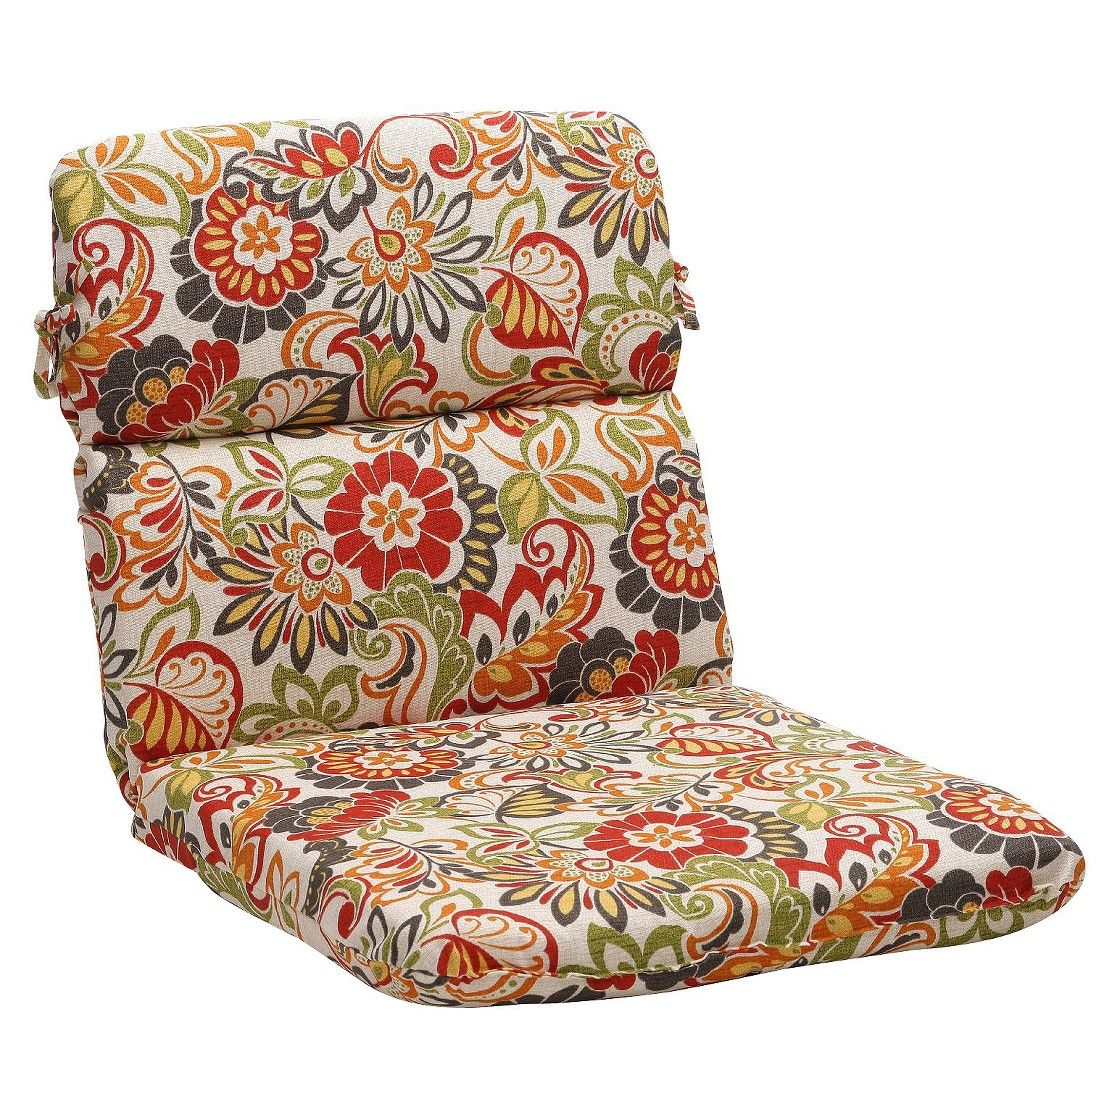 Outdoor Chair Cushion Green/OffWhite/Red Floral